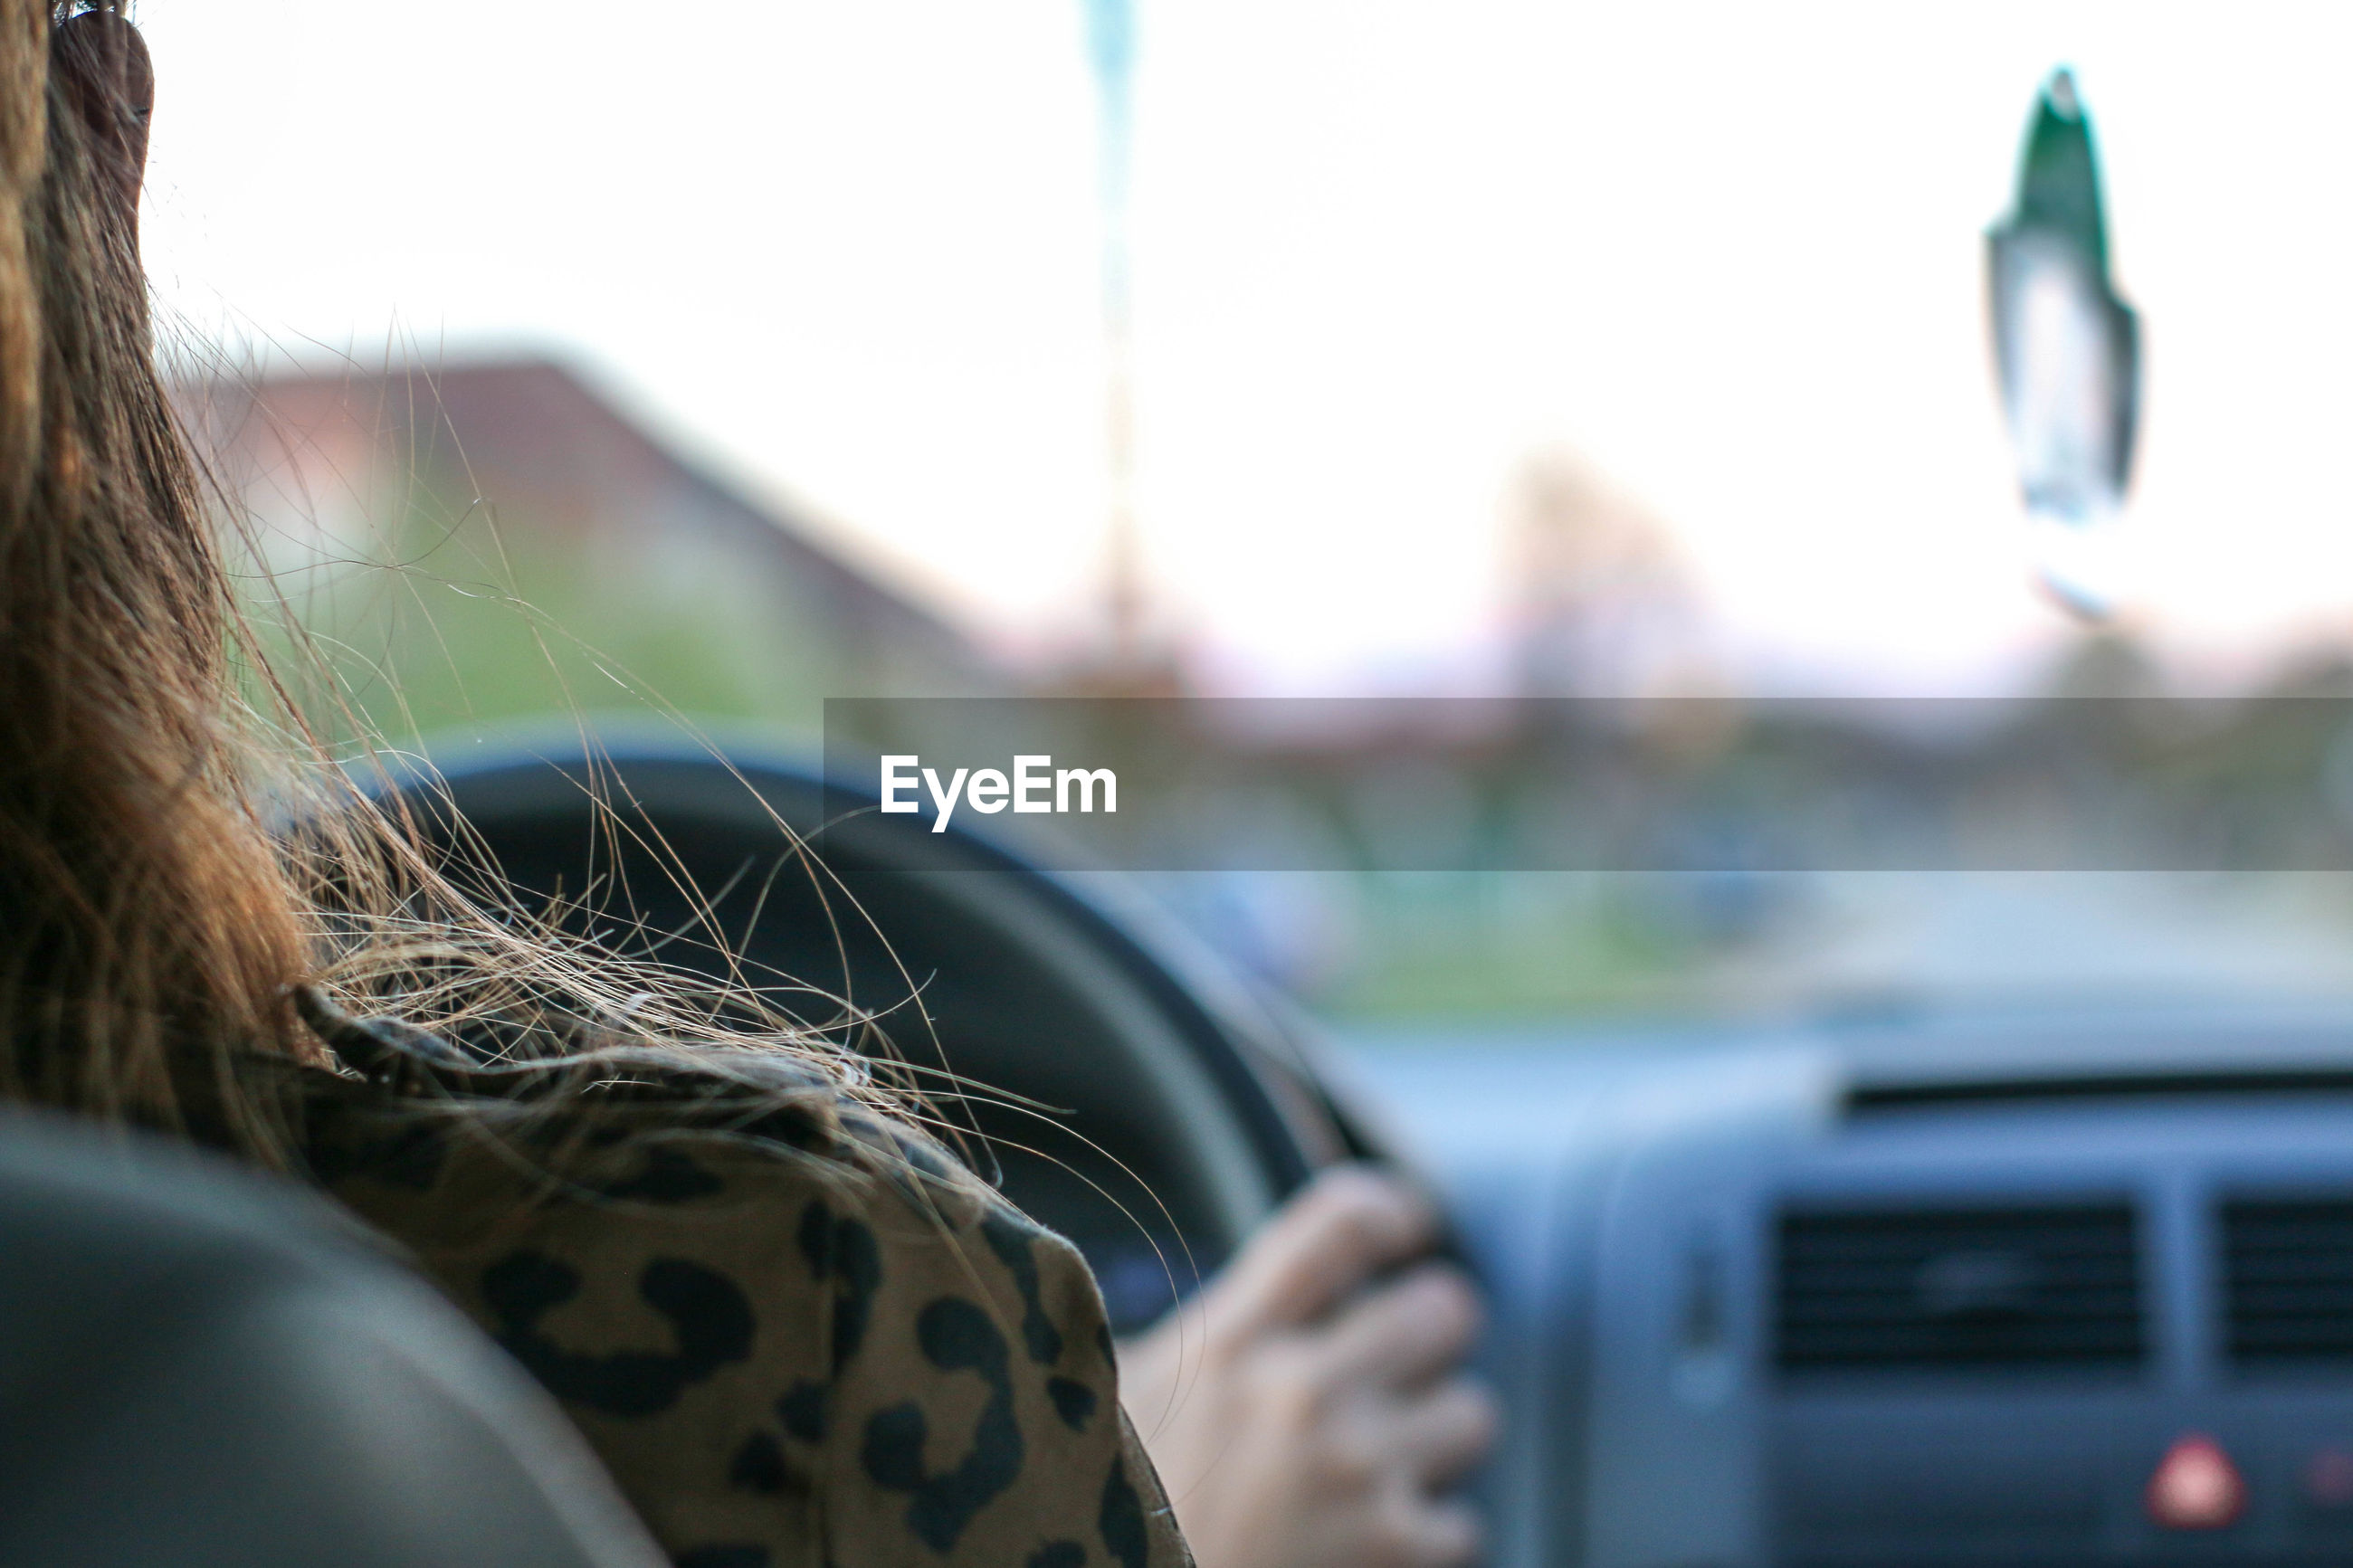 Close-up of woman driving in car